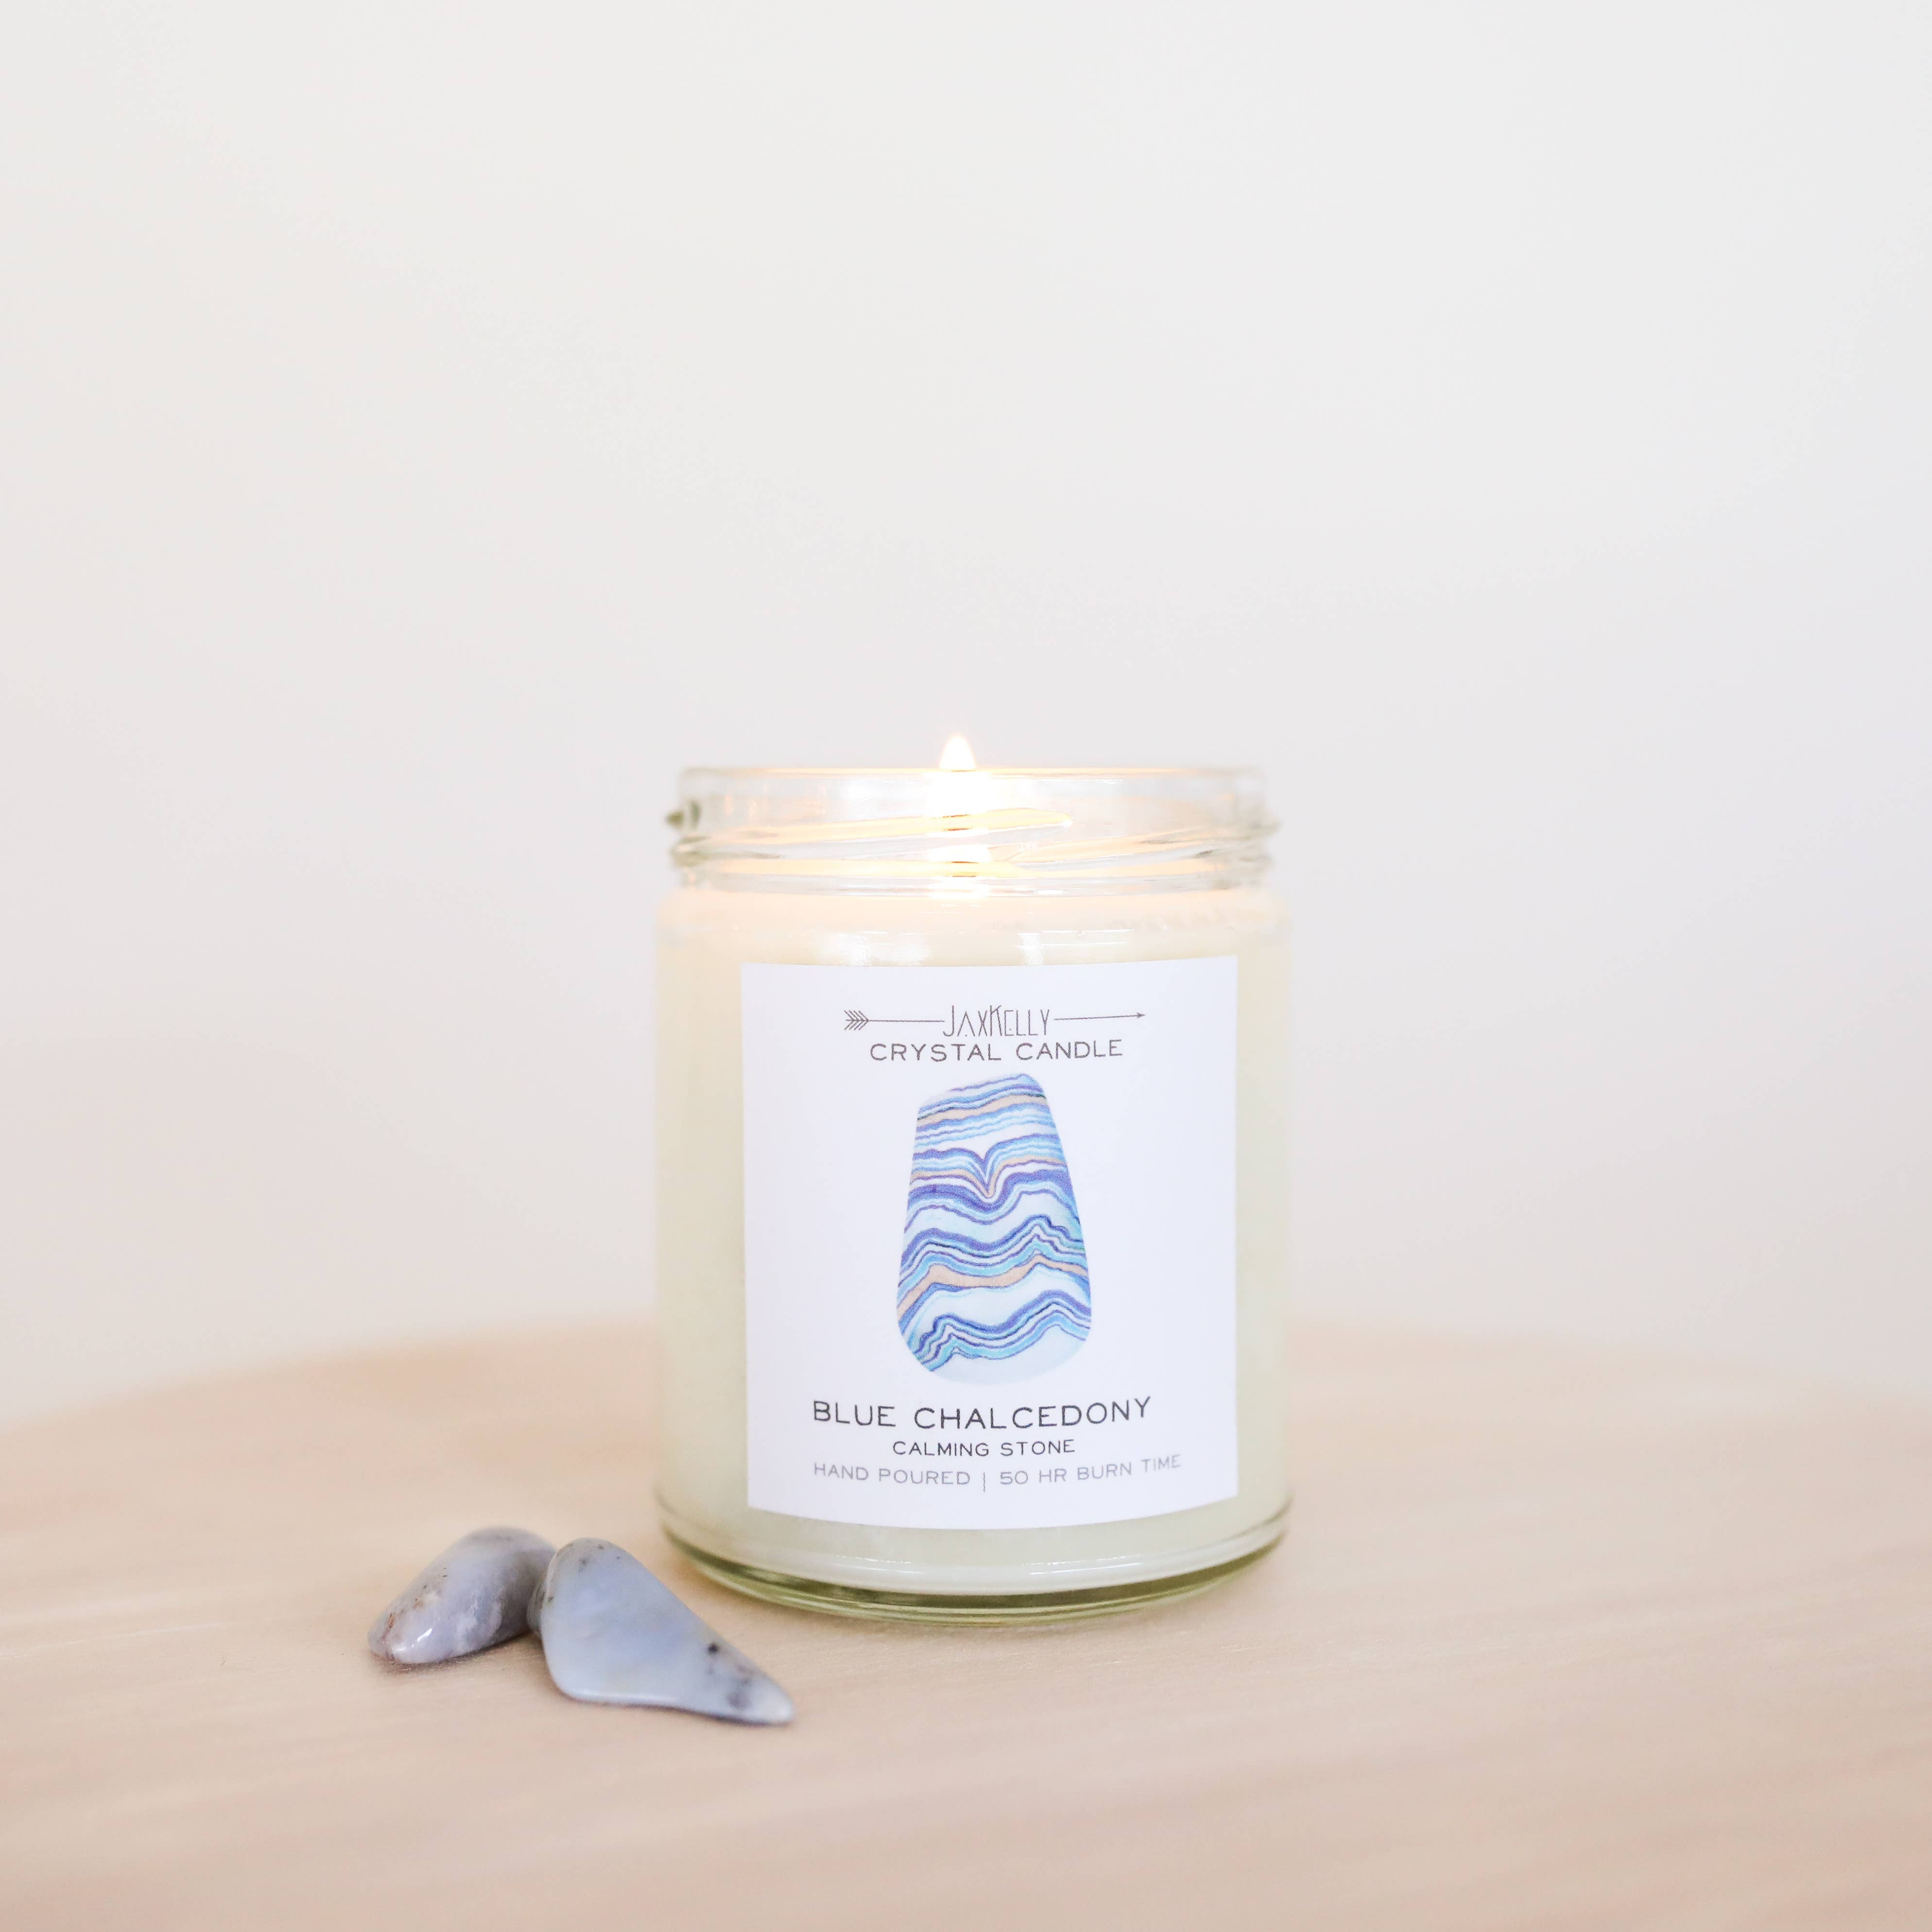 JaxKelly - Blue Chalcedony Candle - Calming